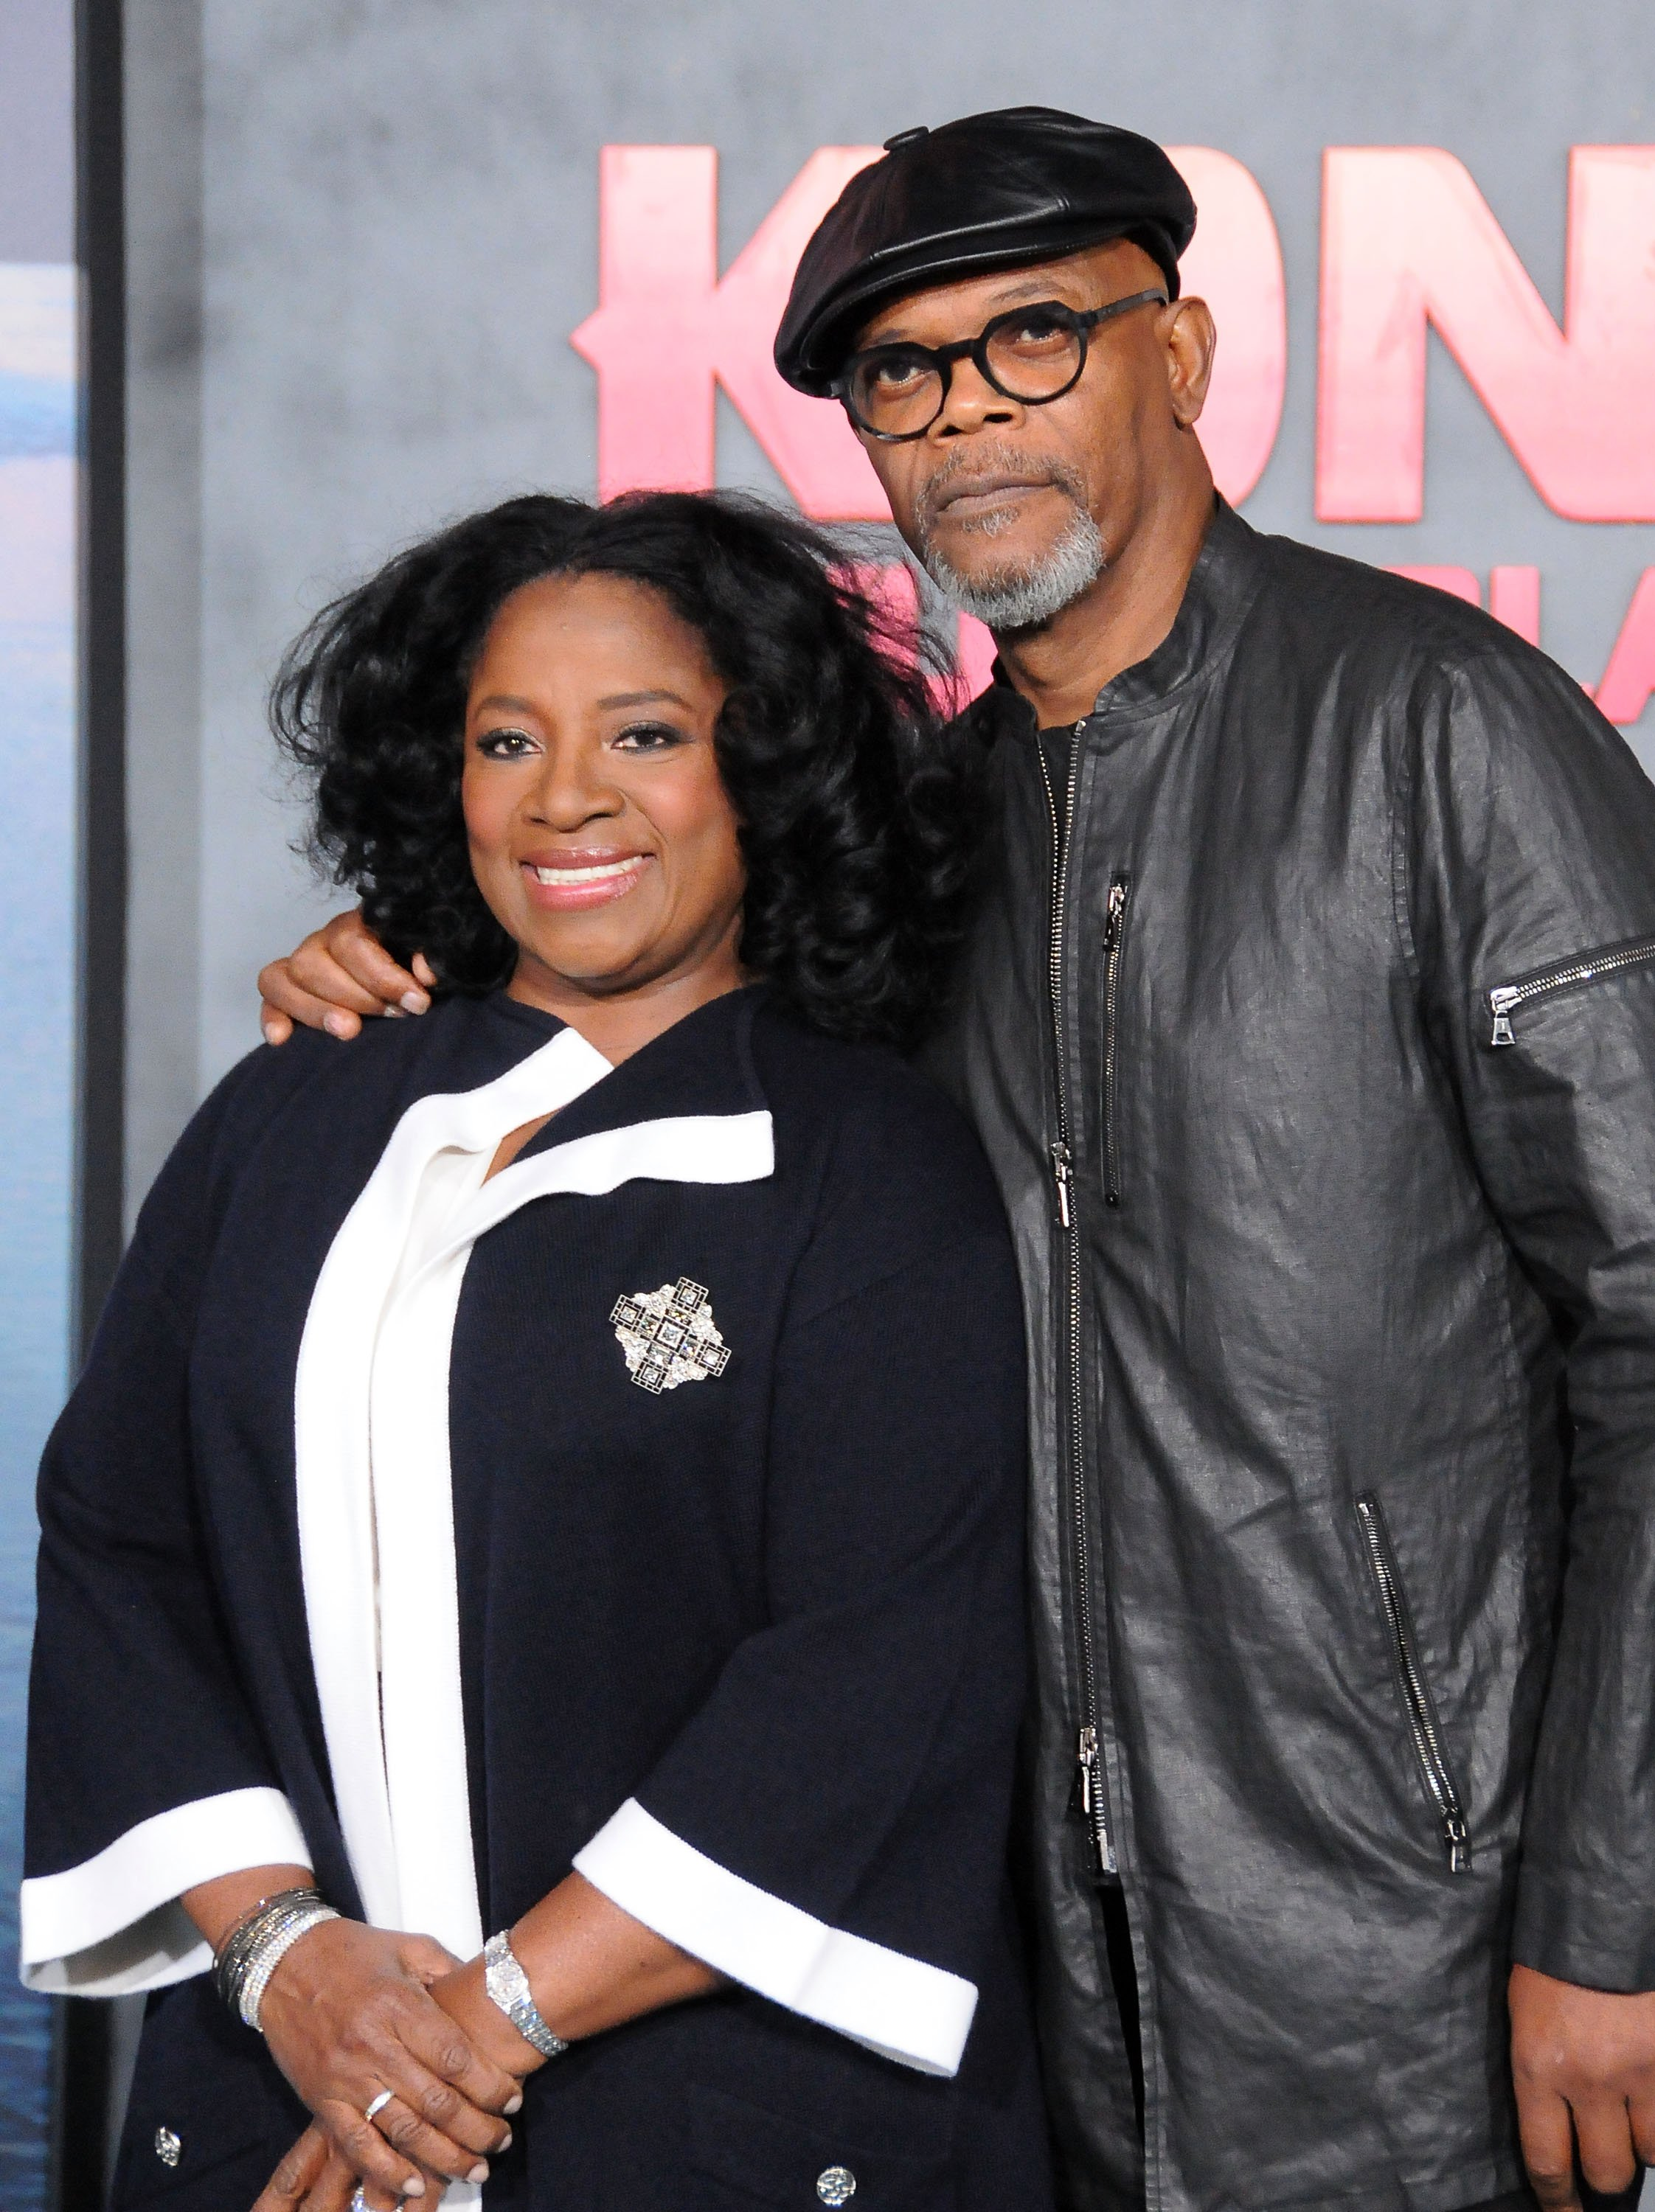 Samuel L. Jackson and wife LaTanya Richardson arrive for the Premiere of Warner Bros. Pictures' 'Kong: Skull Island' at Dolby Theatre on March 8, 2017 in Hollywood, California. | Source: Getty Images.